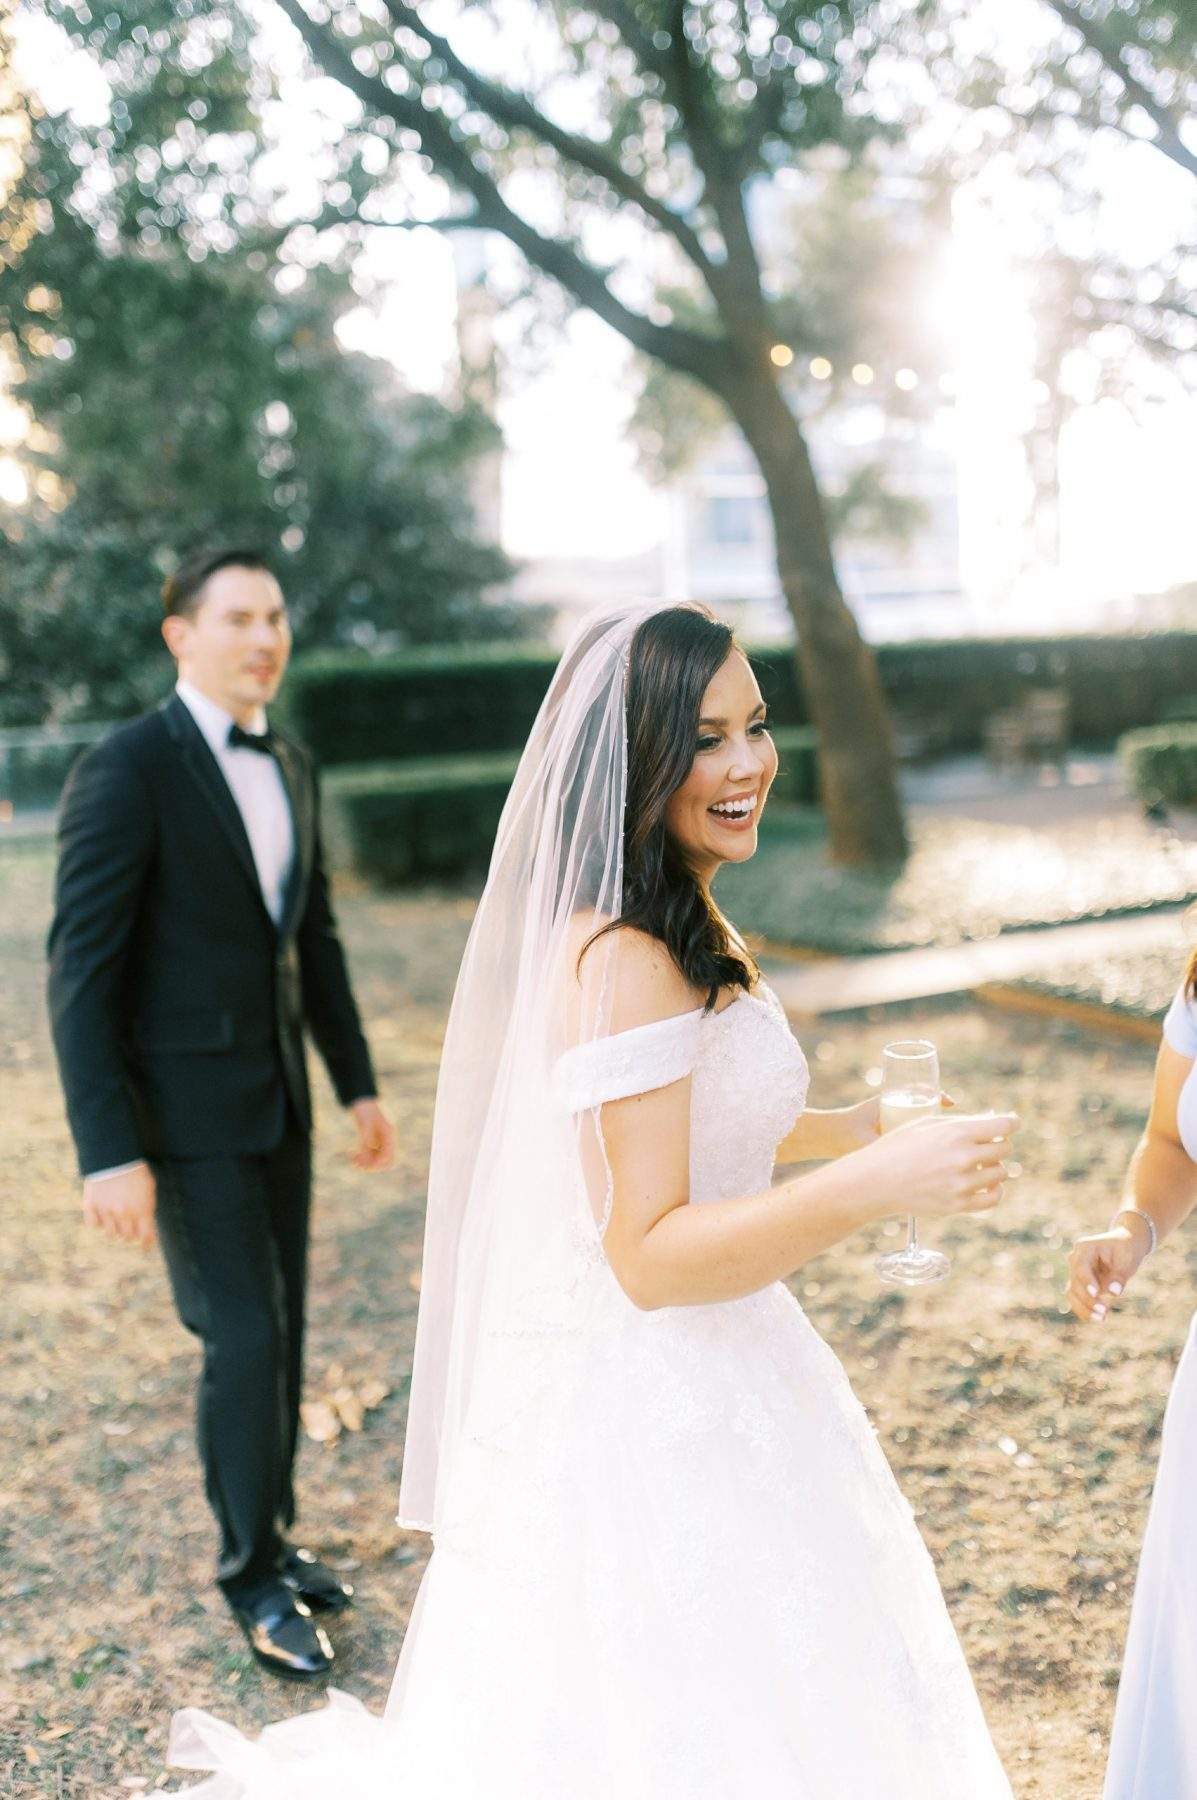 Bride and Groom having a glass of Champagne at Marie Gabrielle Garden Wedding Venue